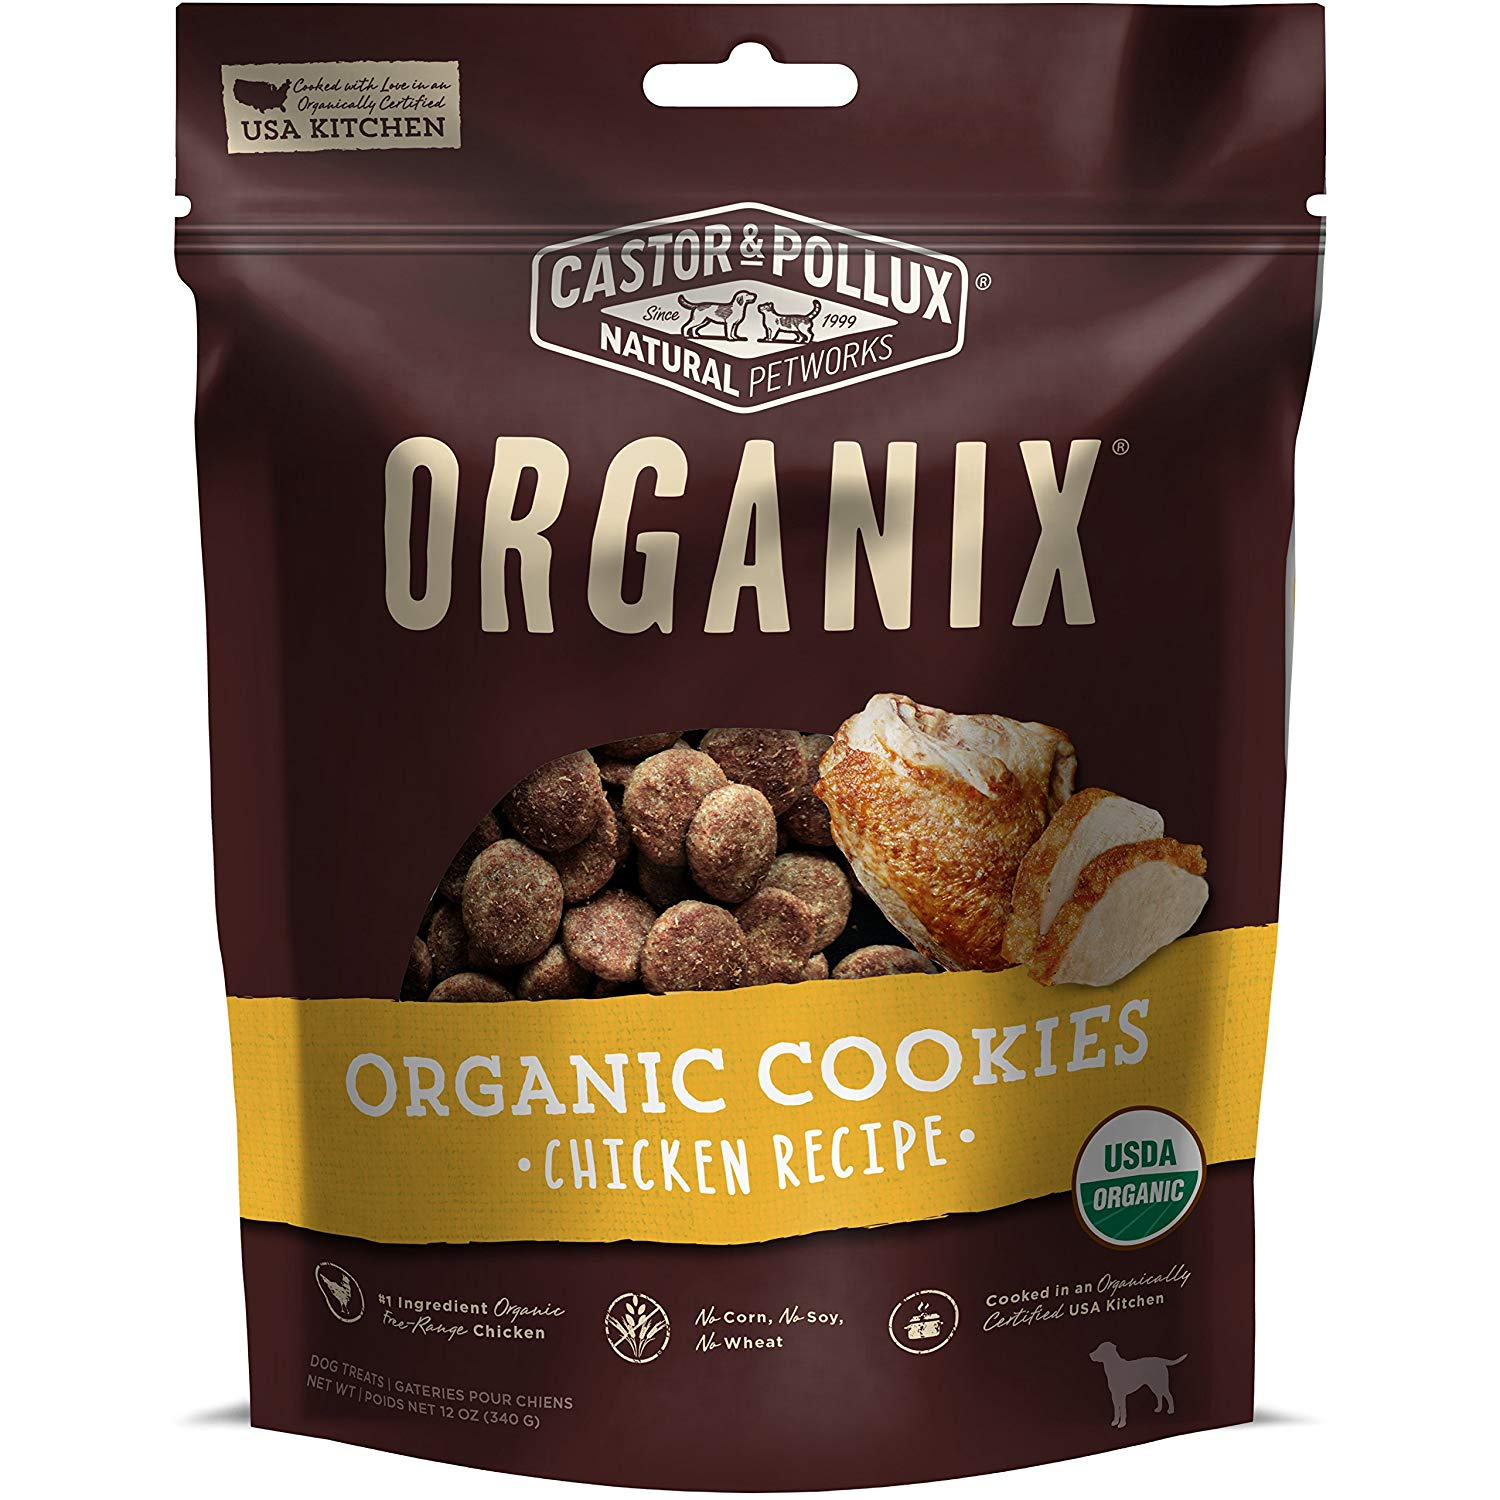 Organix Castor & Pollux Chicken Flavored Dog Cookies Reviews by www.puppyurl.com